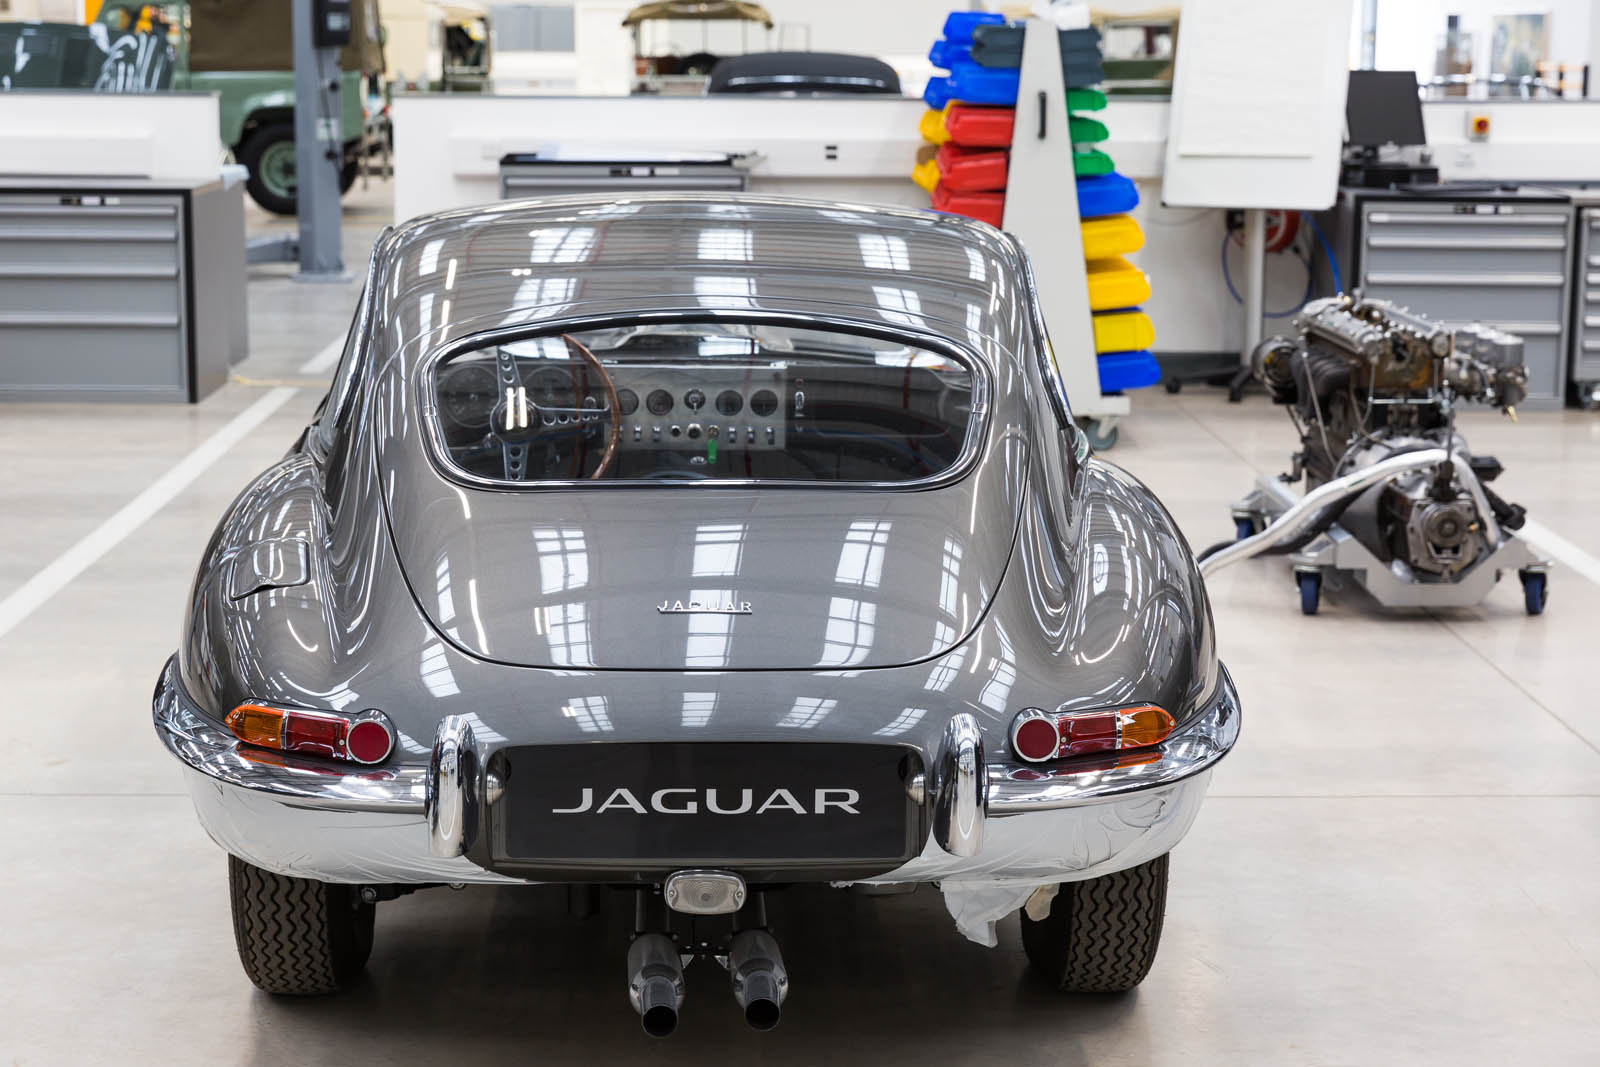 Jaguar_Land_Rover_Classic_Car_Center_21